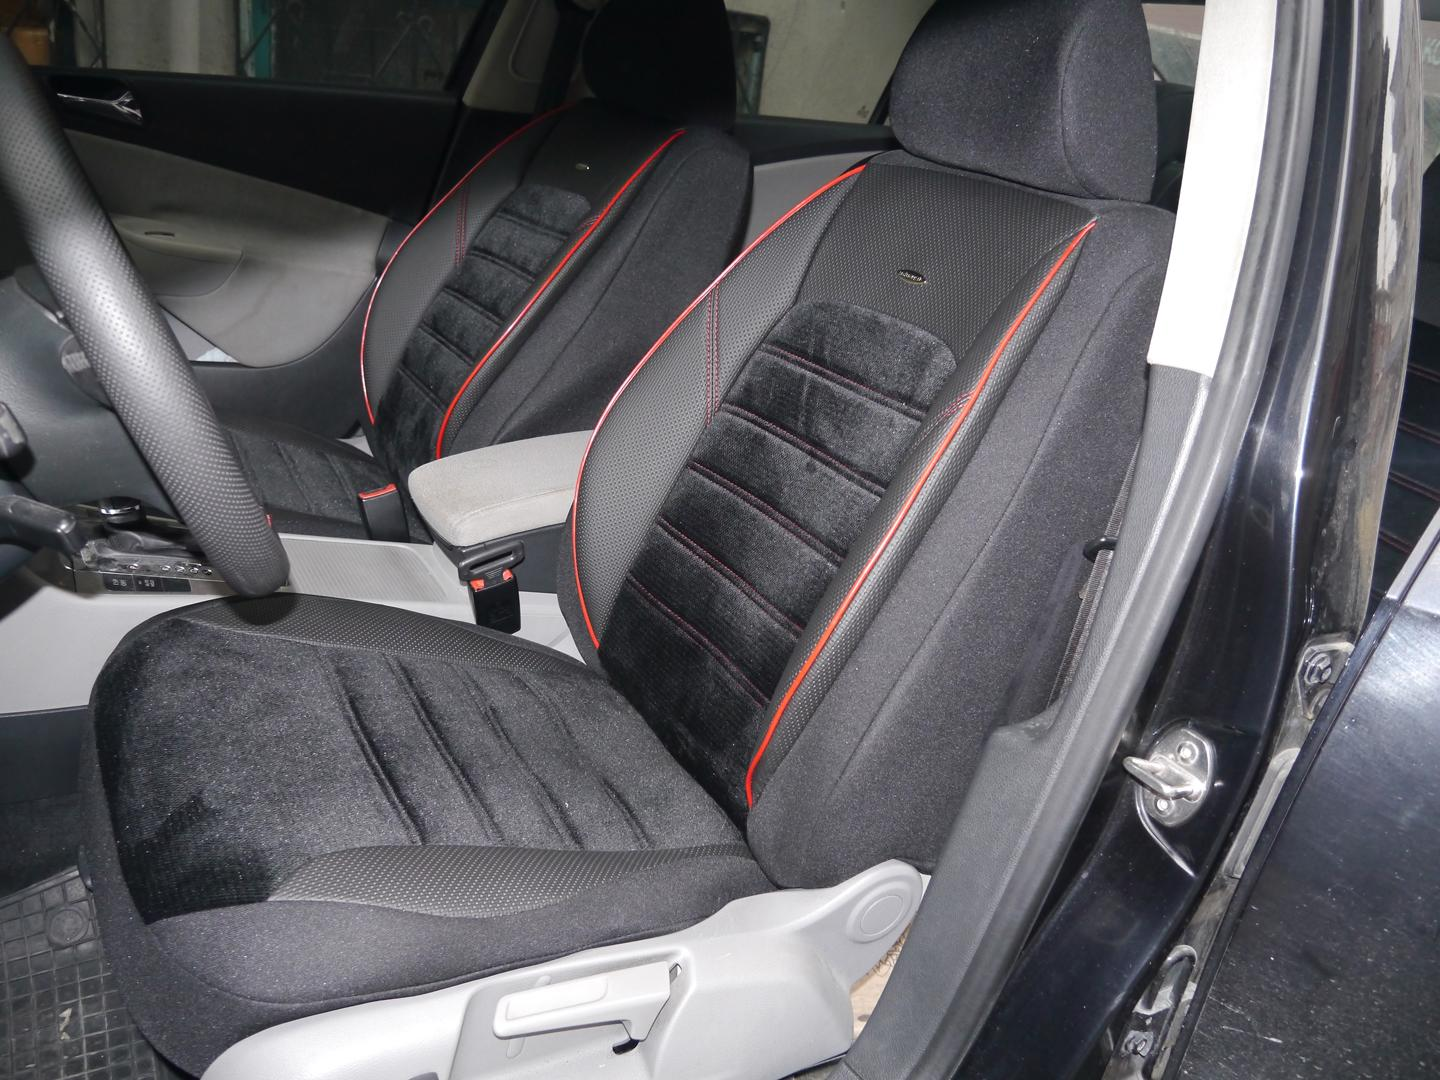 Magnificent Car Seat Covers Protectors For Bmw X1 F48 No4A Unemploymentrelief Wooden Chair Designs For Living Room Unemploymentrelieforg